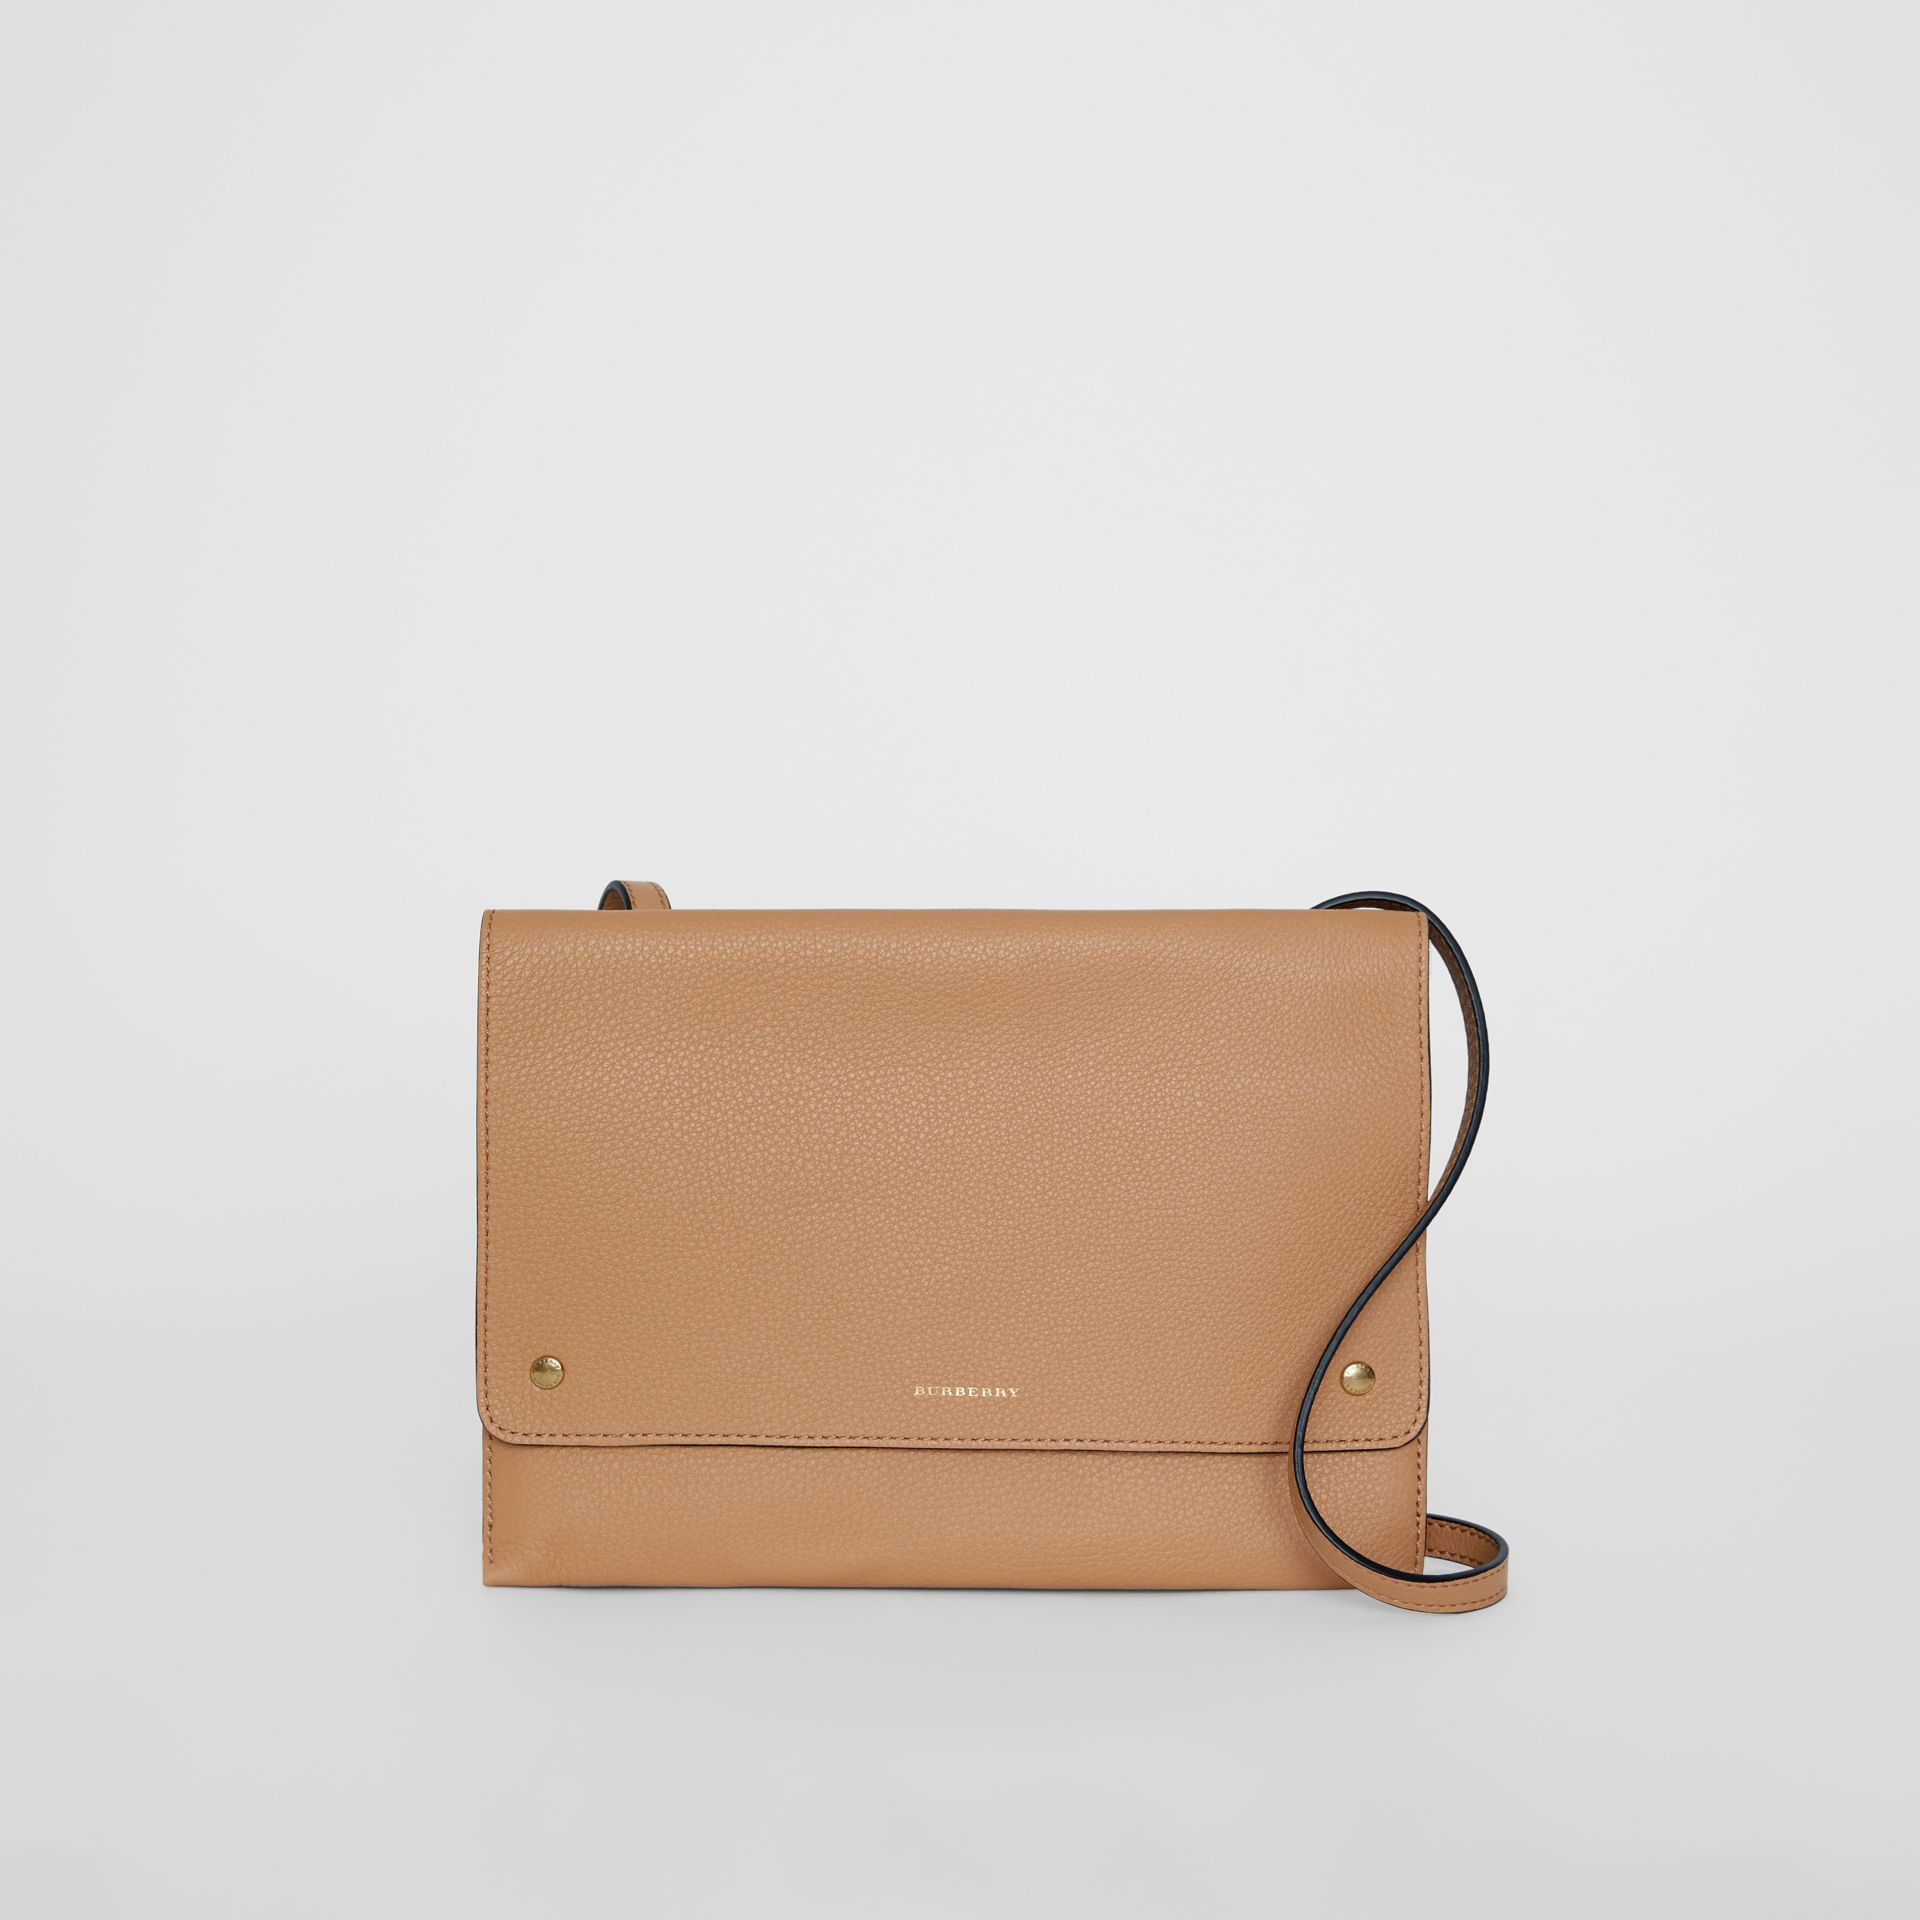 Leather Pouch with Detachable Strap in Light Camel - Women | Burberry United States - gallery image 0